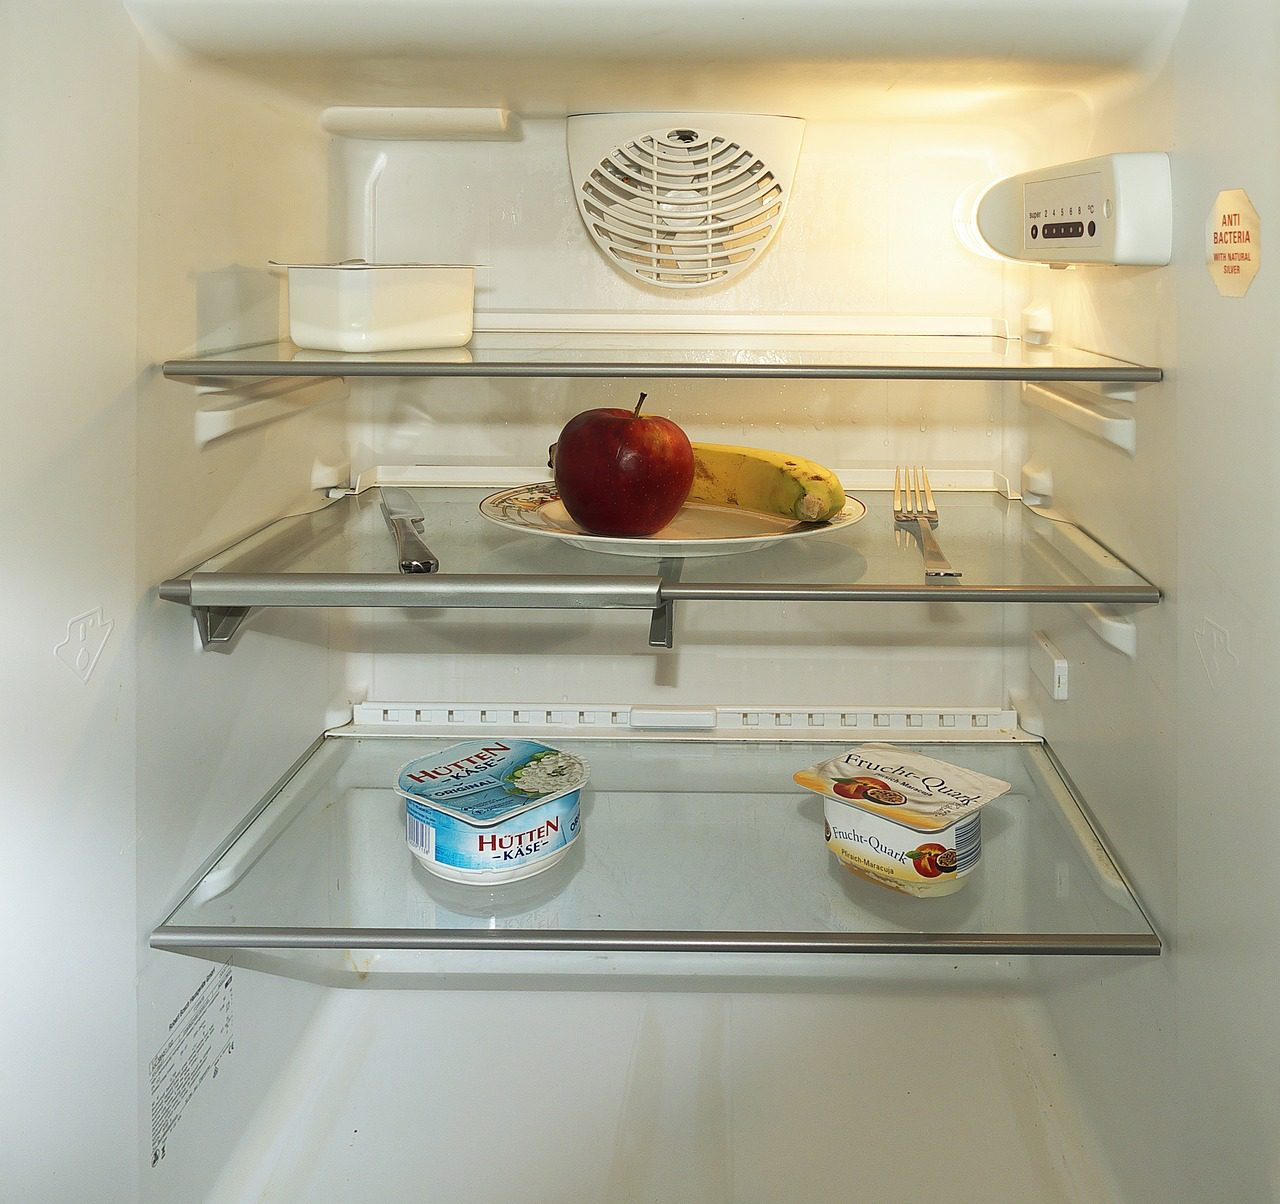 Here Is How to Fix A Refrigerator on Your Own